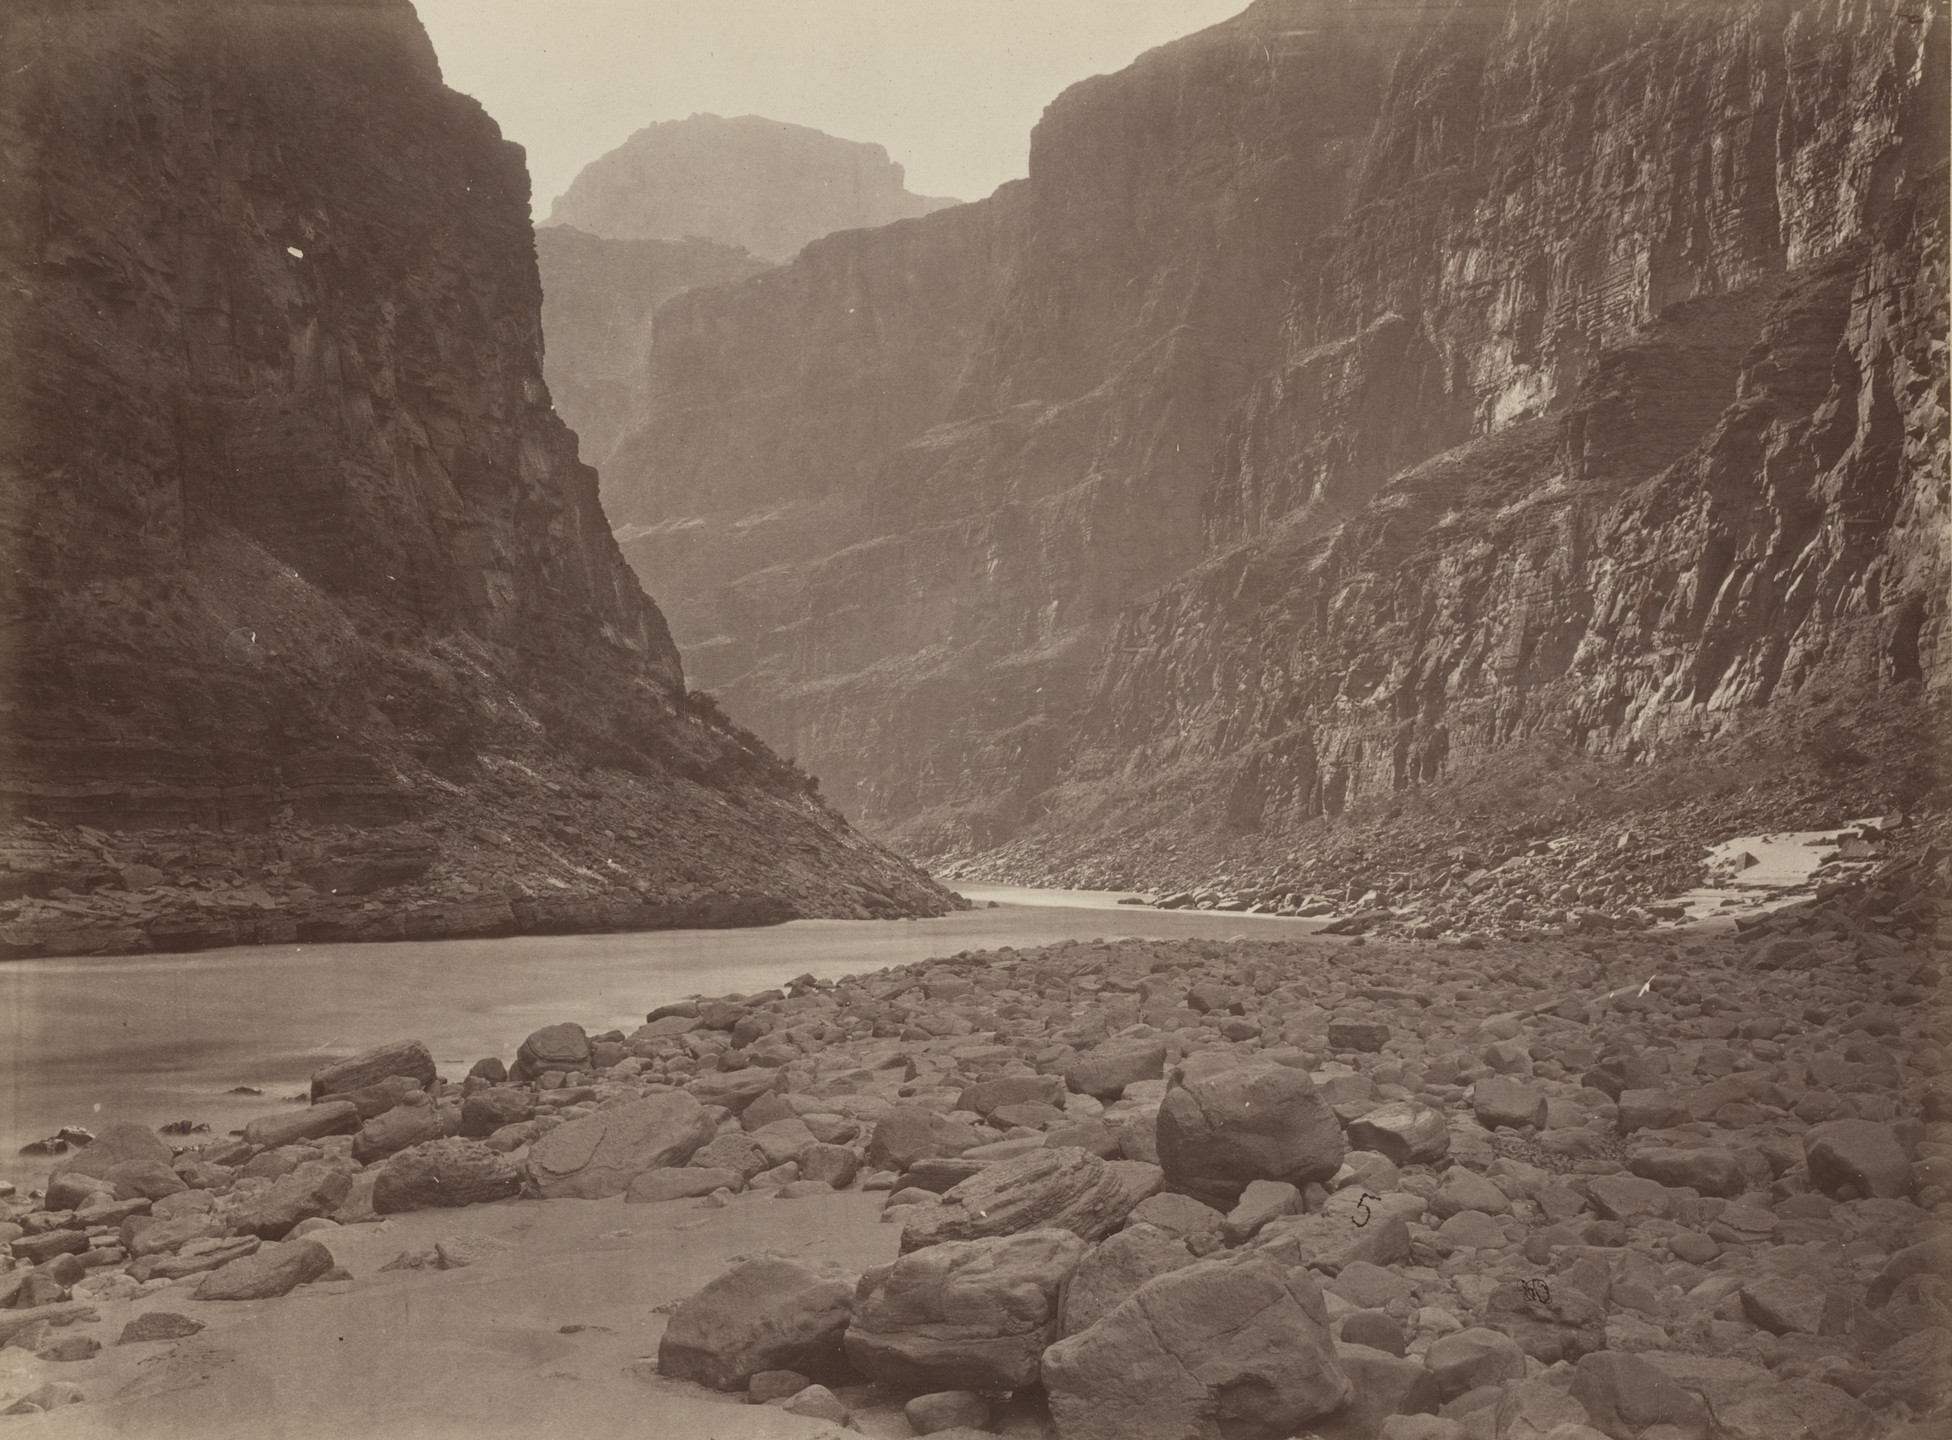 Timothy O'Sullivan, William H. Bell. Colorado River, Mouth of Kanab Wash, Looking West. Seasons of 1871, 1872 and 1873